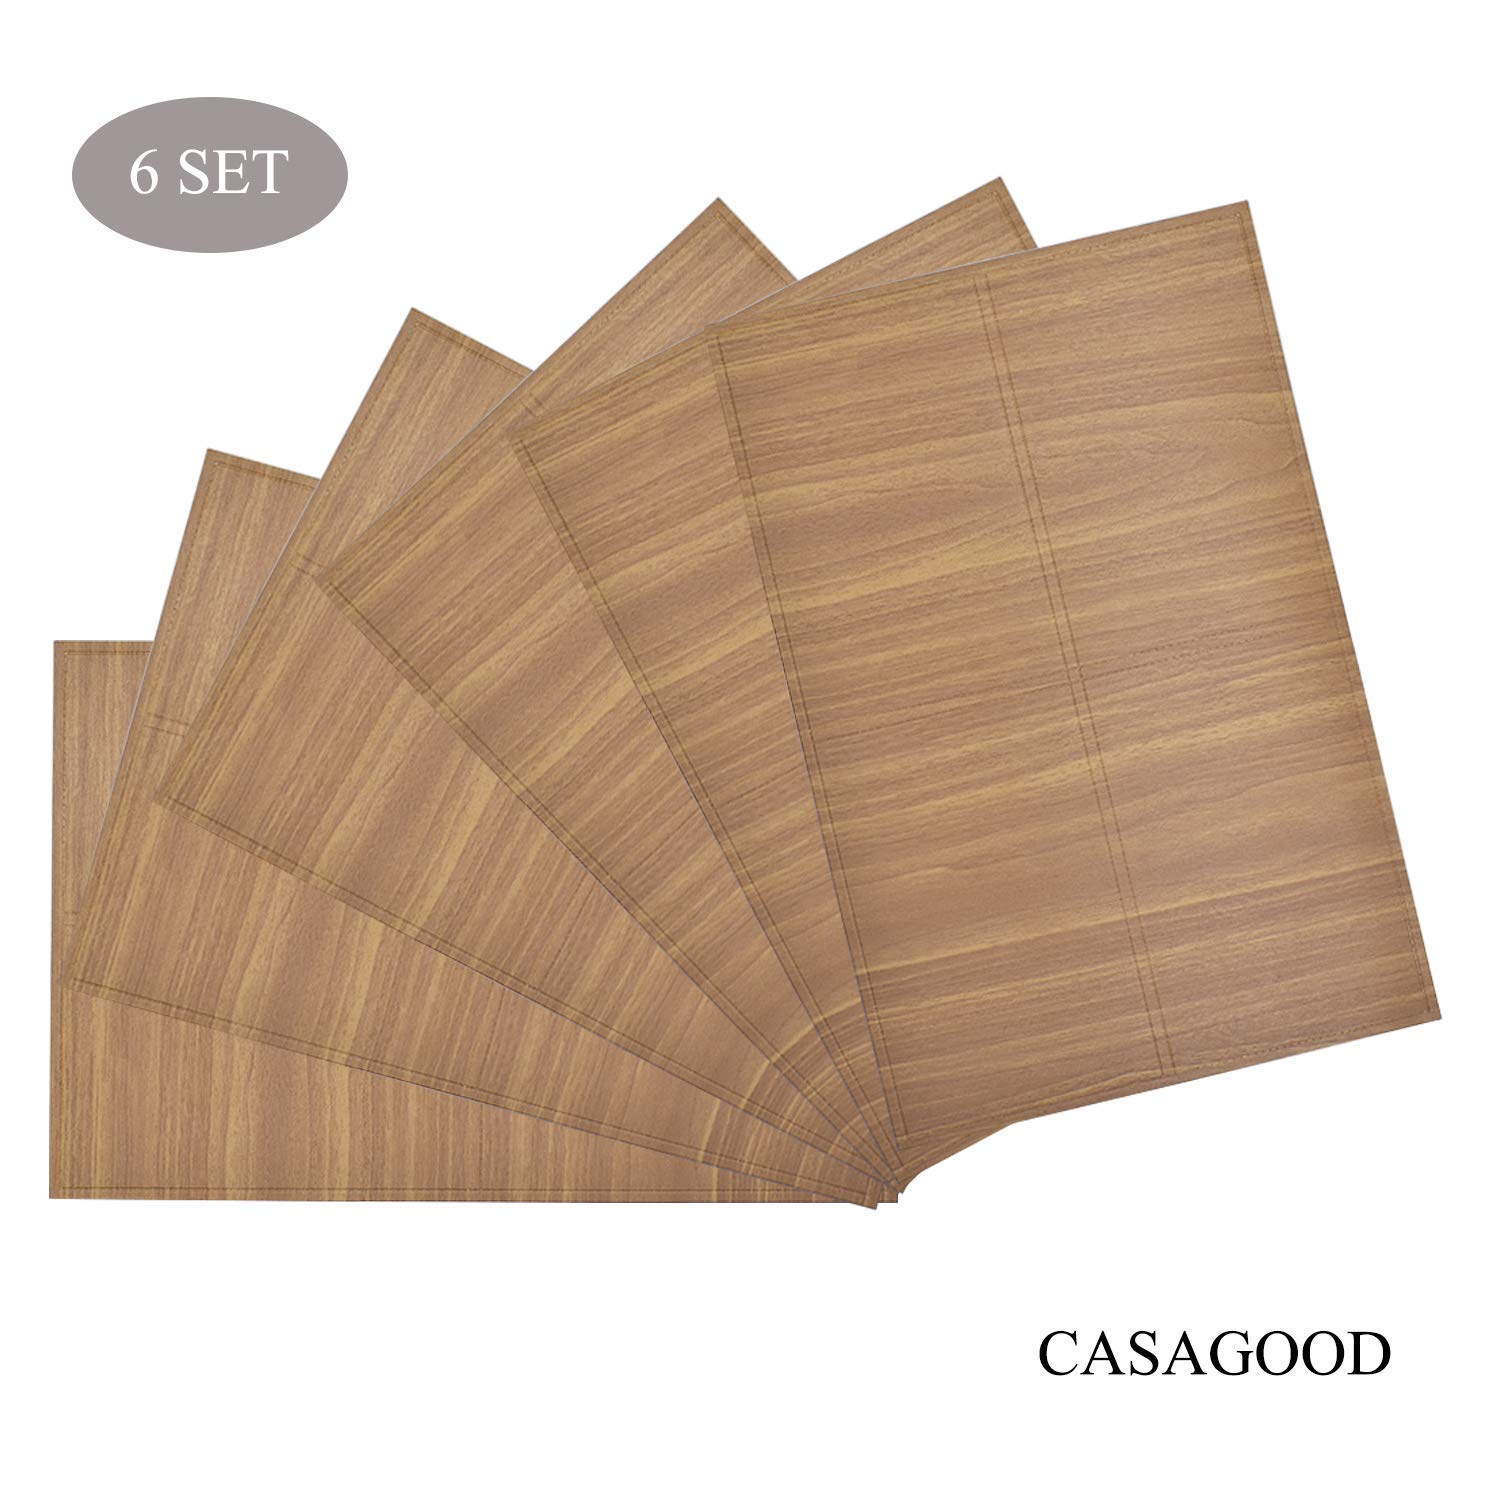 CASAGOOD Plastic Placemats Wood Grain Waterproof Non-Slip Kitchen Decor Mats Dining Table Place Mats Heat & Stain Resistant Coffee Mats Easy to Clean Set of 6-17.3''x11.4'' (Original)